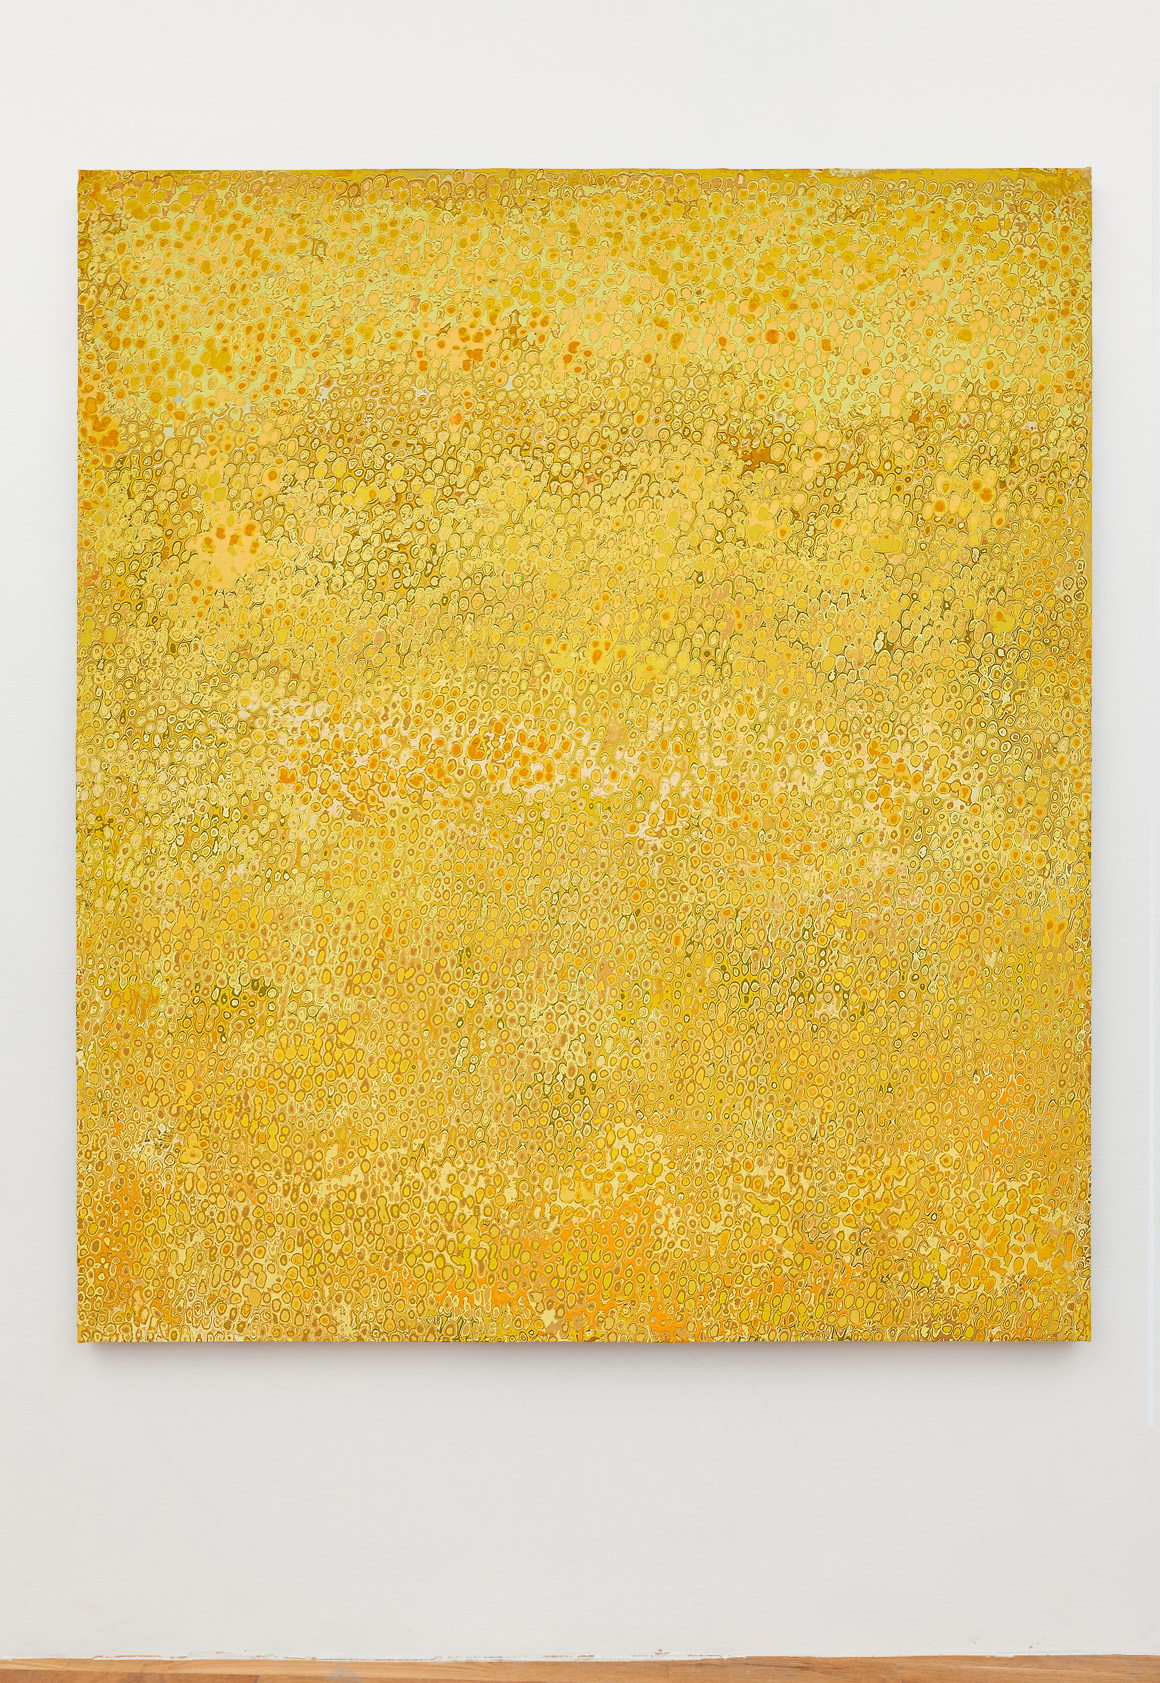 """<p><span class=""""name"""">Andrew Jensdotter</span><br><em>Yellow 70</em><span class='media'>Carved latex on canvas</span>80 x 68 in (203.2 x 172.7 cm)<br>2018<br><a class='inquire' href='mailto:info@gildargallery.com?subject=Artwork Inquiry AJEN0049&body=I am interested in finding out more about Yellow 70 by Andrew Jensdotter'>Inquire</a></p>"""